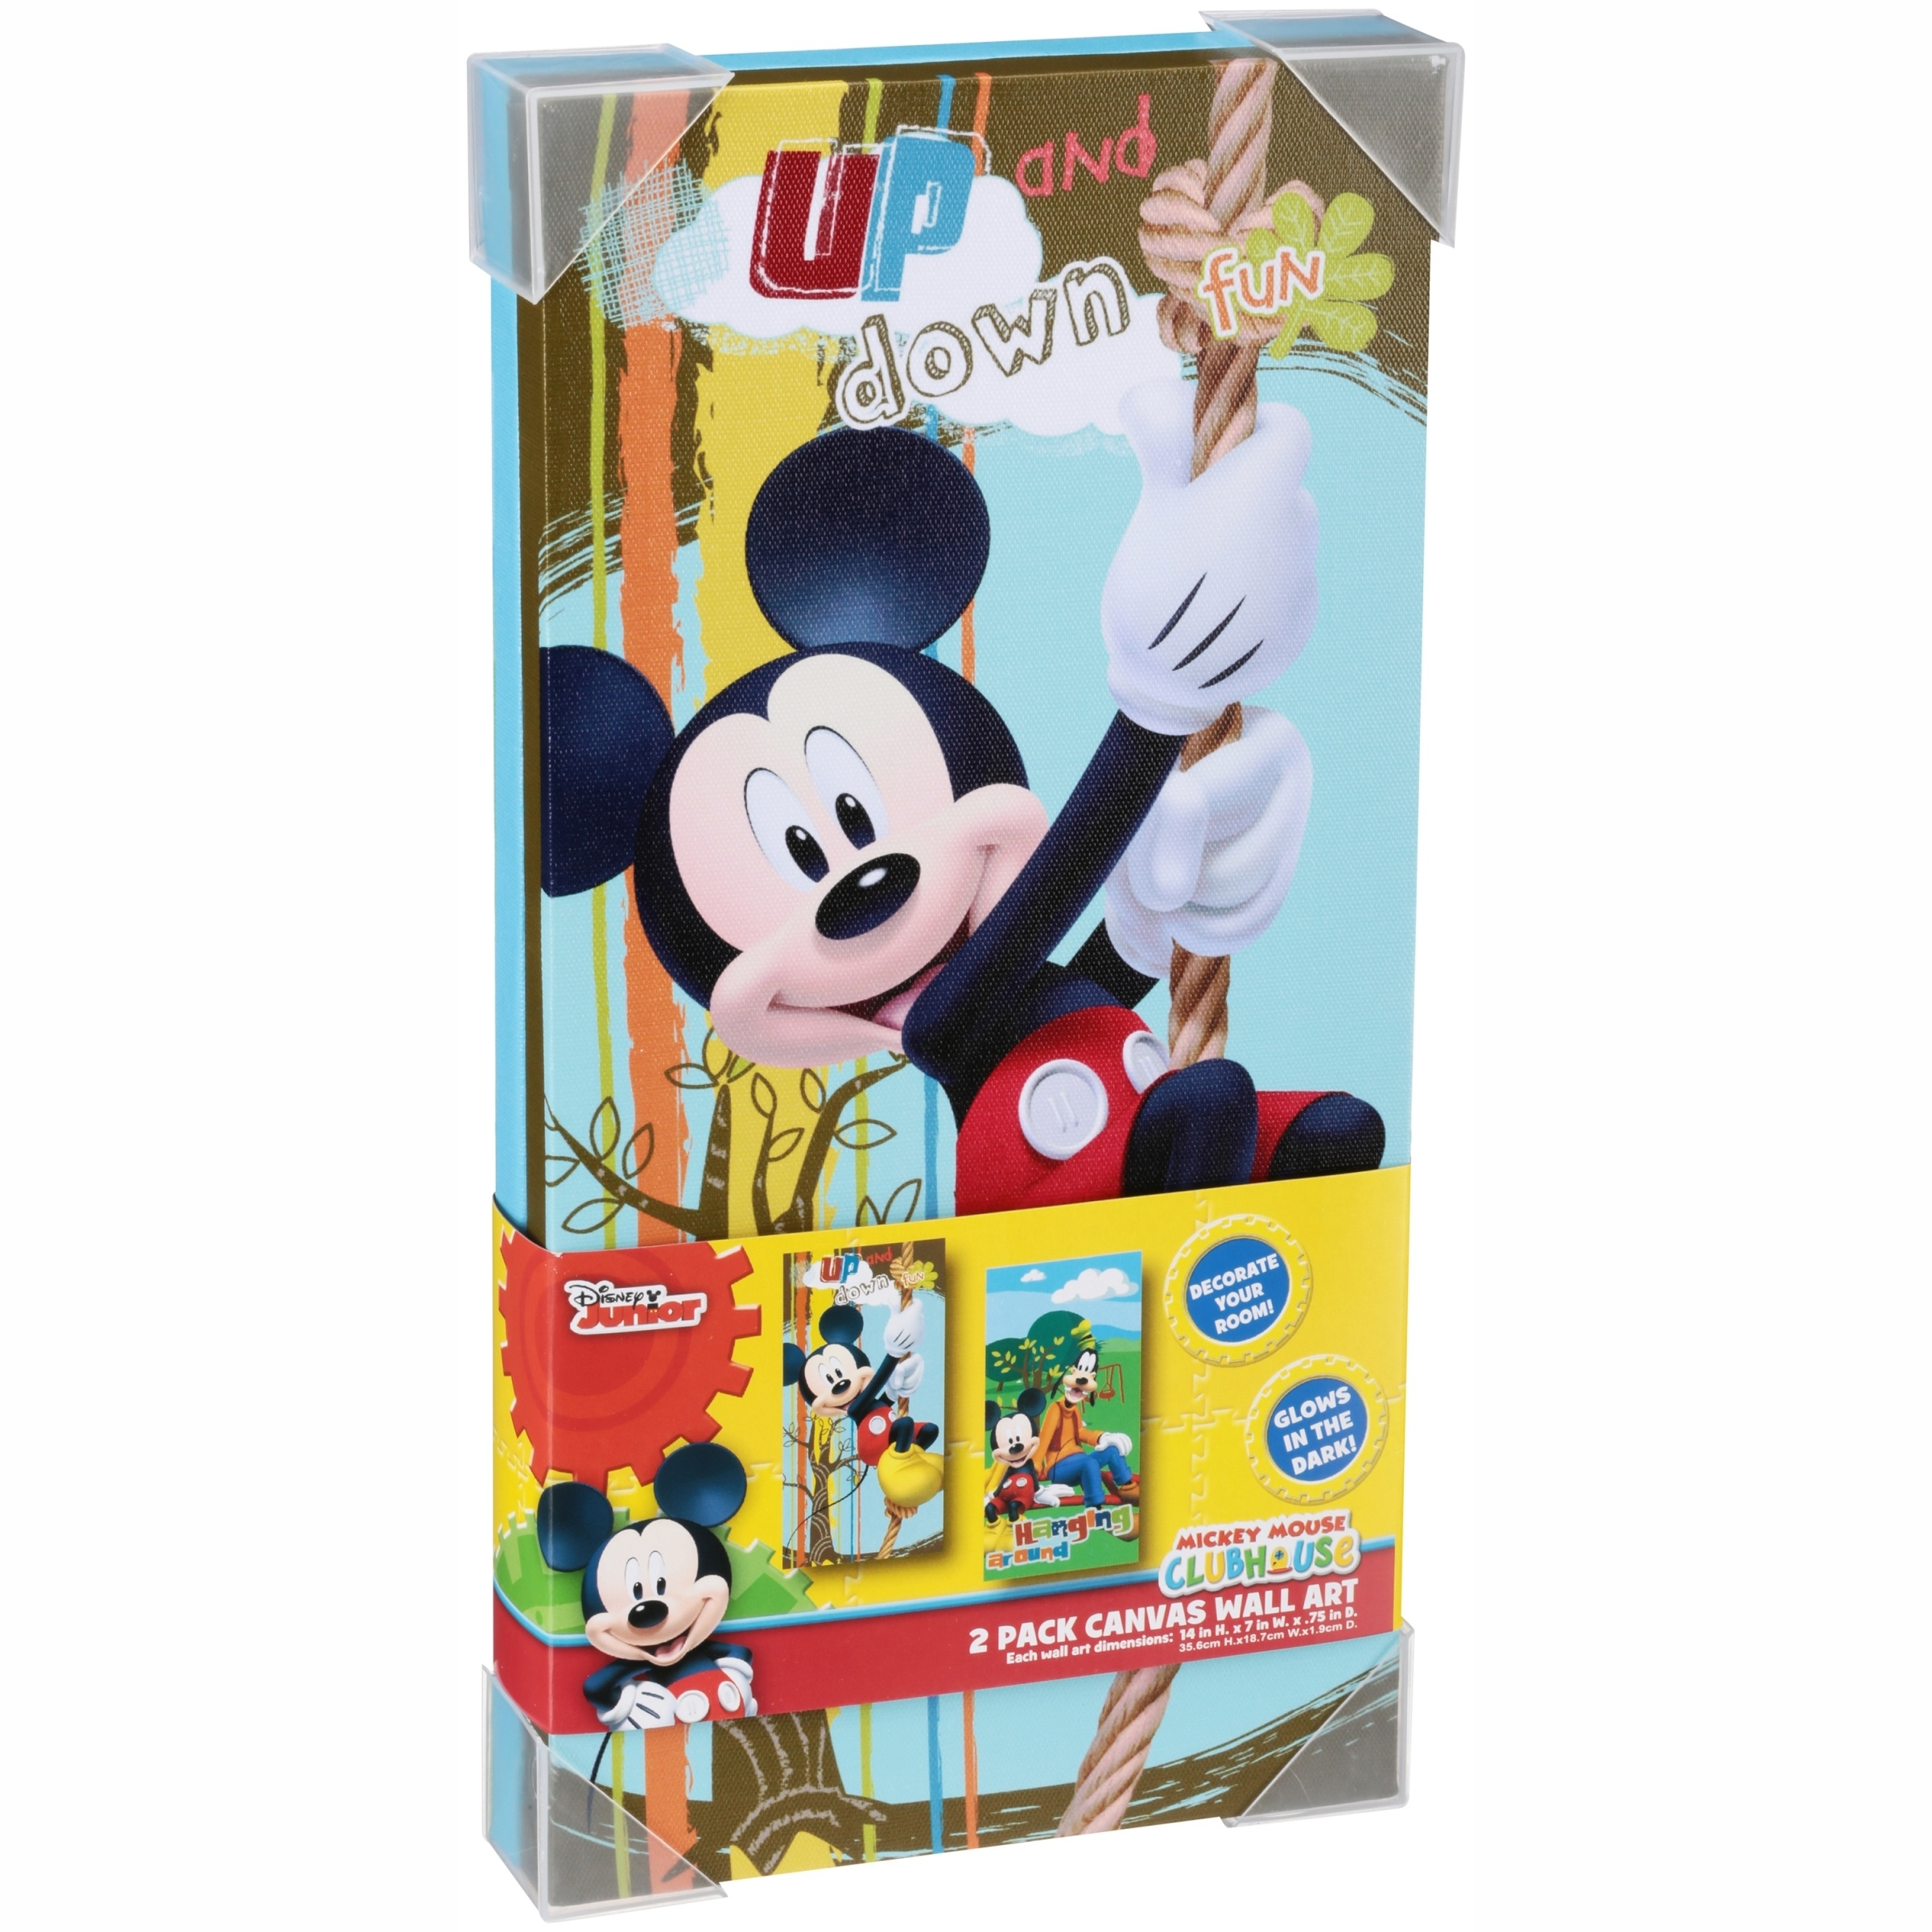 Disney Mickey Mouse Glow In The Dark 2-Pack Canvas Wall Art with Mickey Mouse Canvas Wall Art (Image 7 of 20)